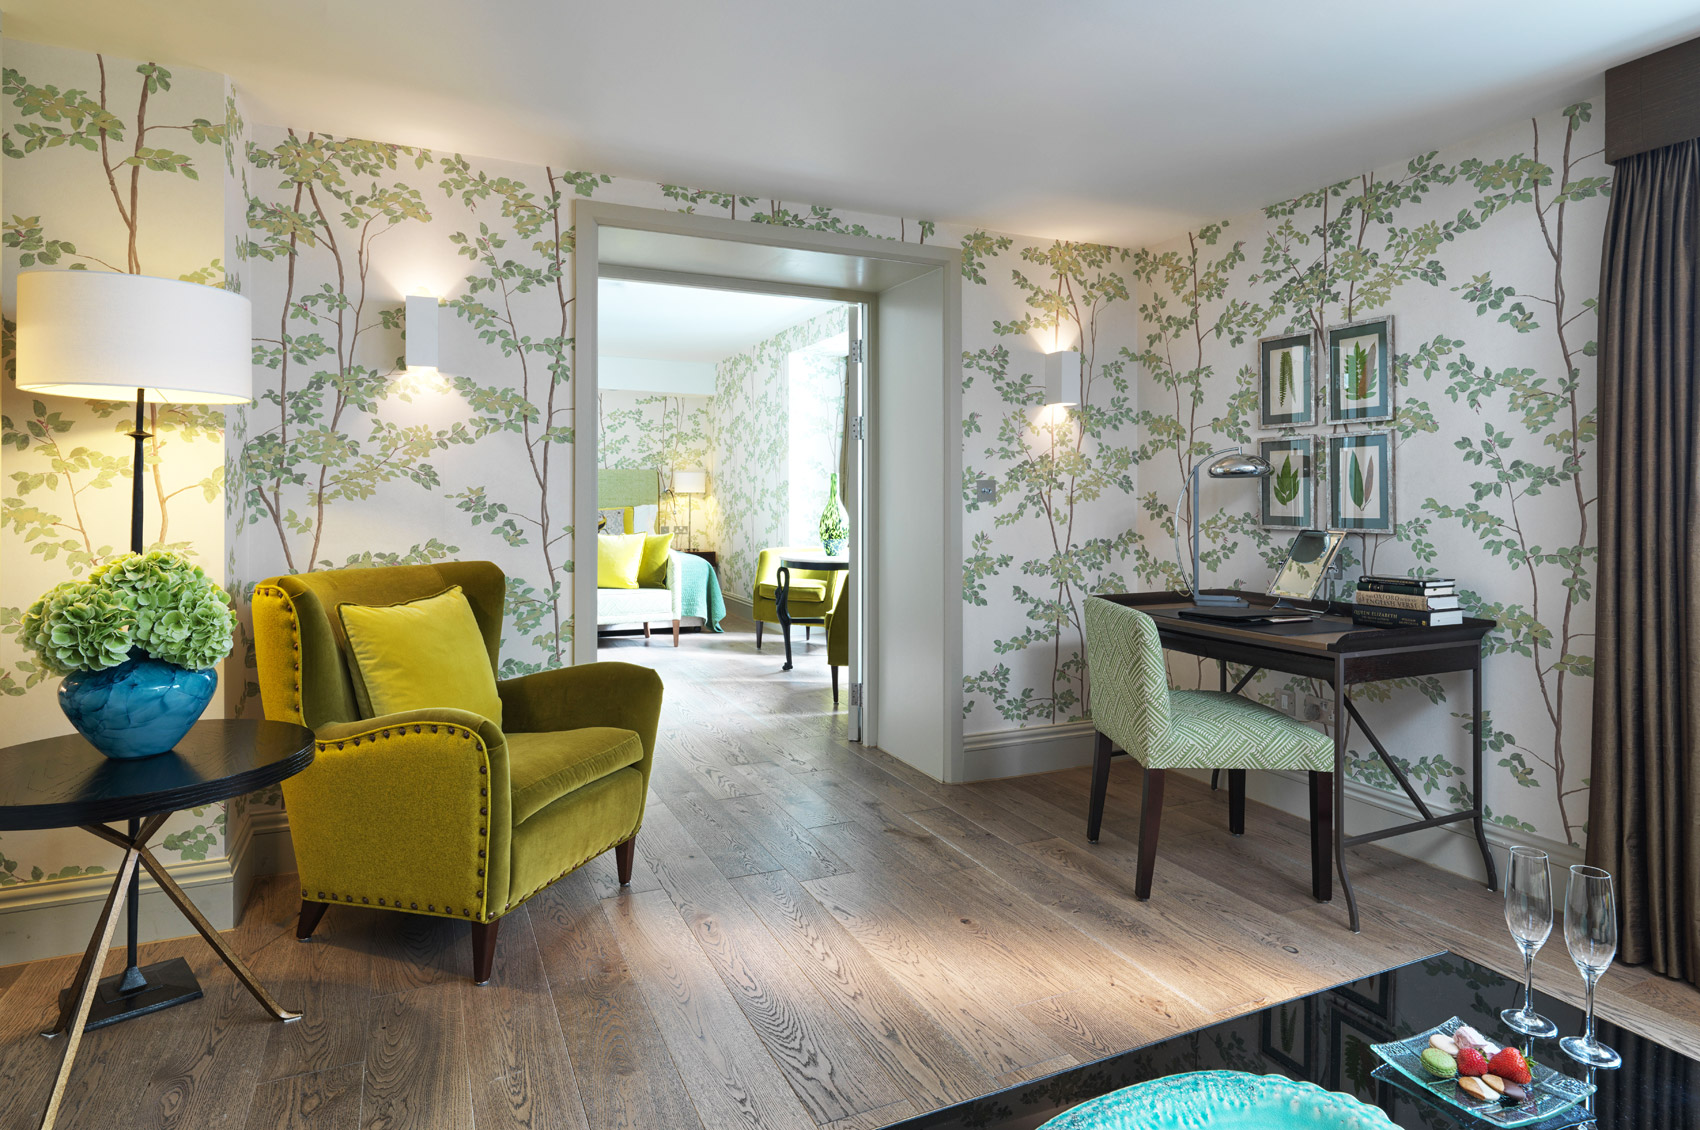 Brown's Hotel Launches Two New Olga Polizzi Designed Suites